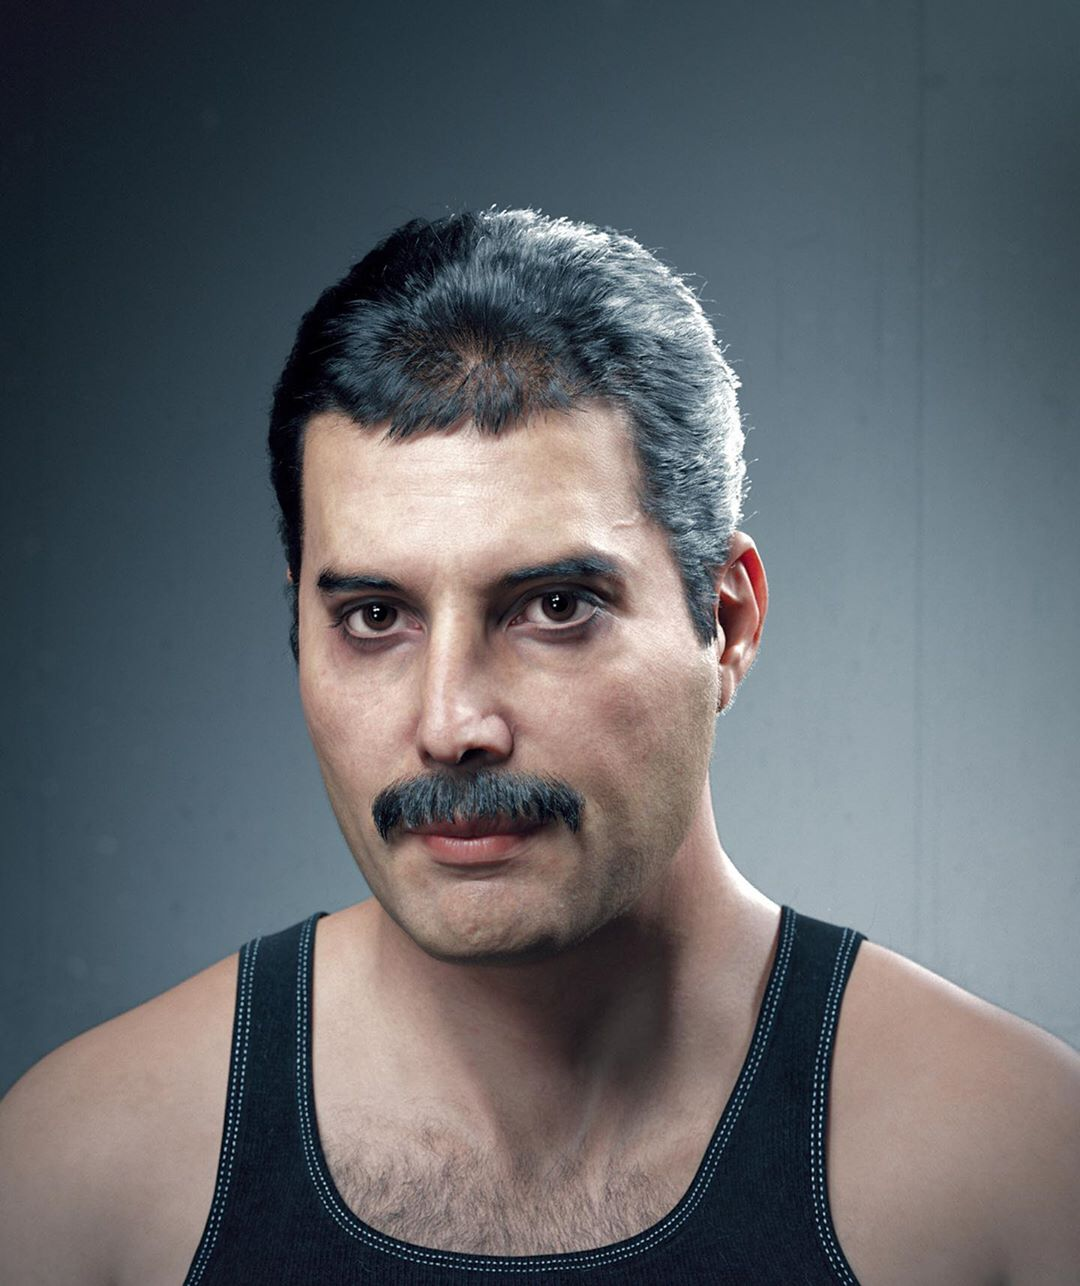 3d model freddie mercury by hadi karimi